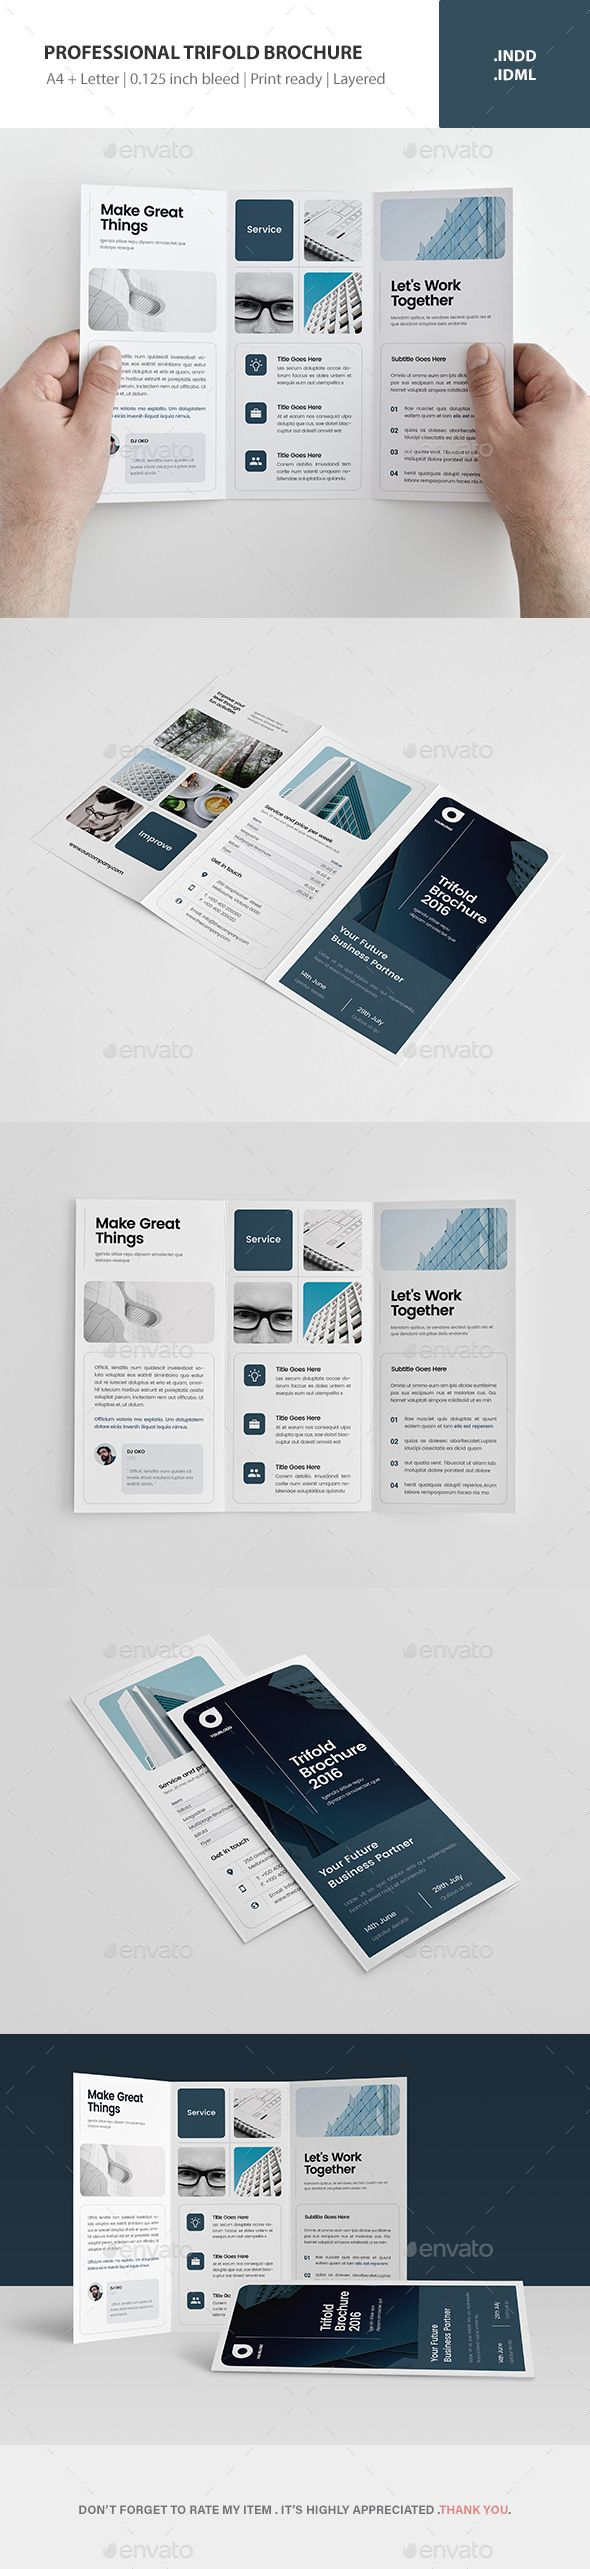 Professional Trifold Brochure | Folletos, Tríptico y Diseño editorial